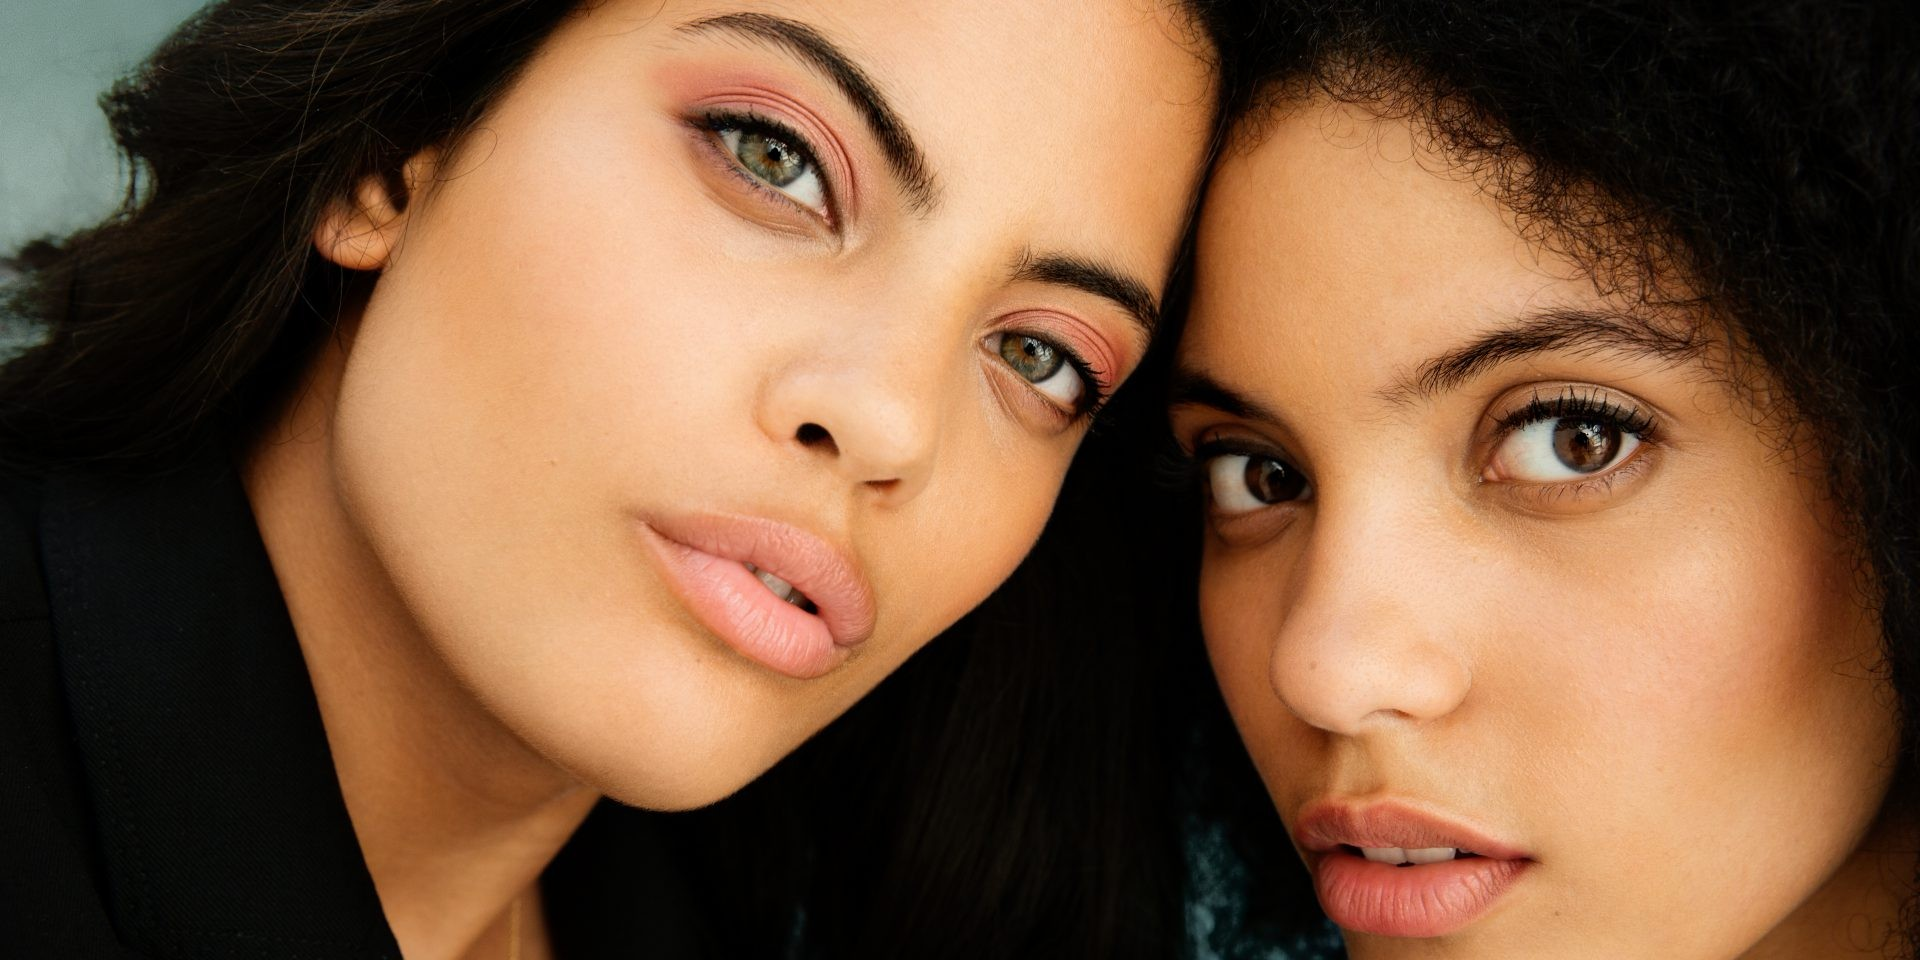 """You don't know how much power a song has"": An interview with Ibeyi"